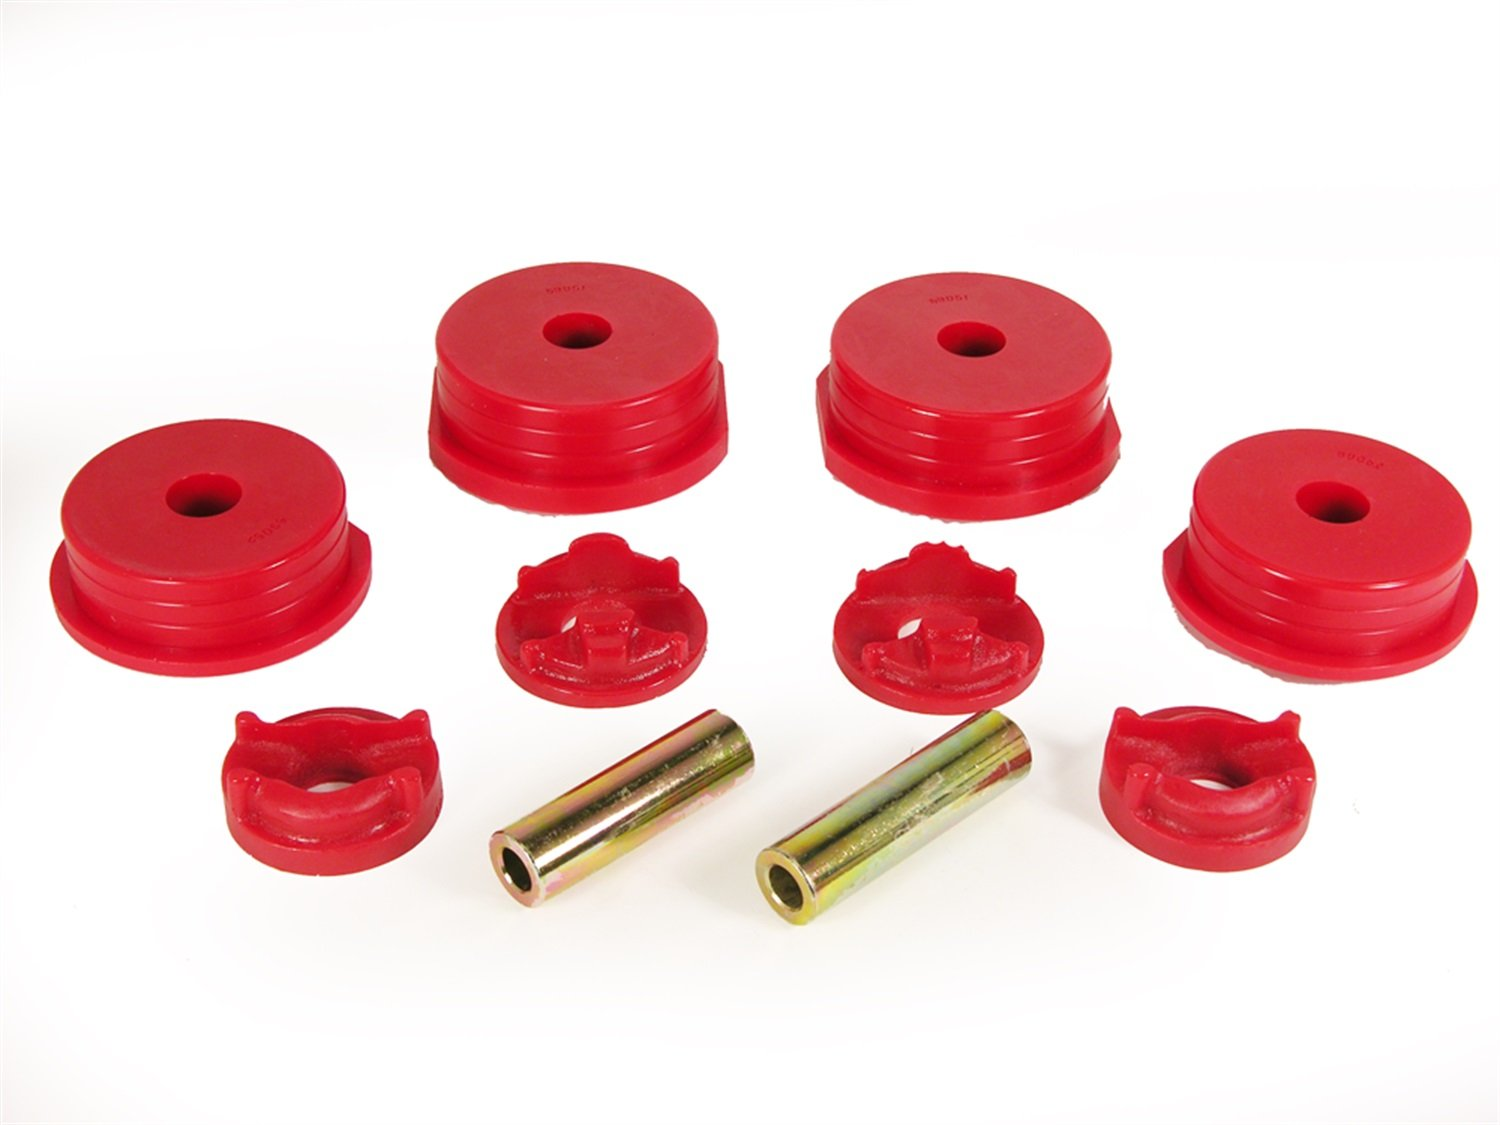 Prothane 13-1901 Red Motor and Transmission Mount Insert Kit by Prothane